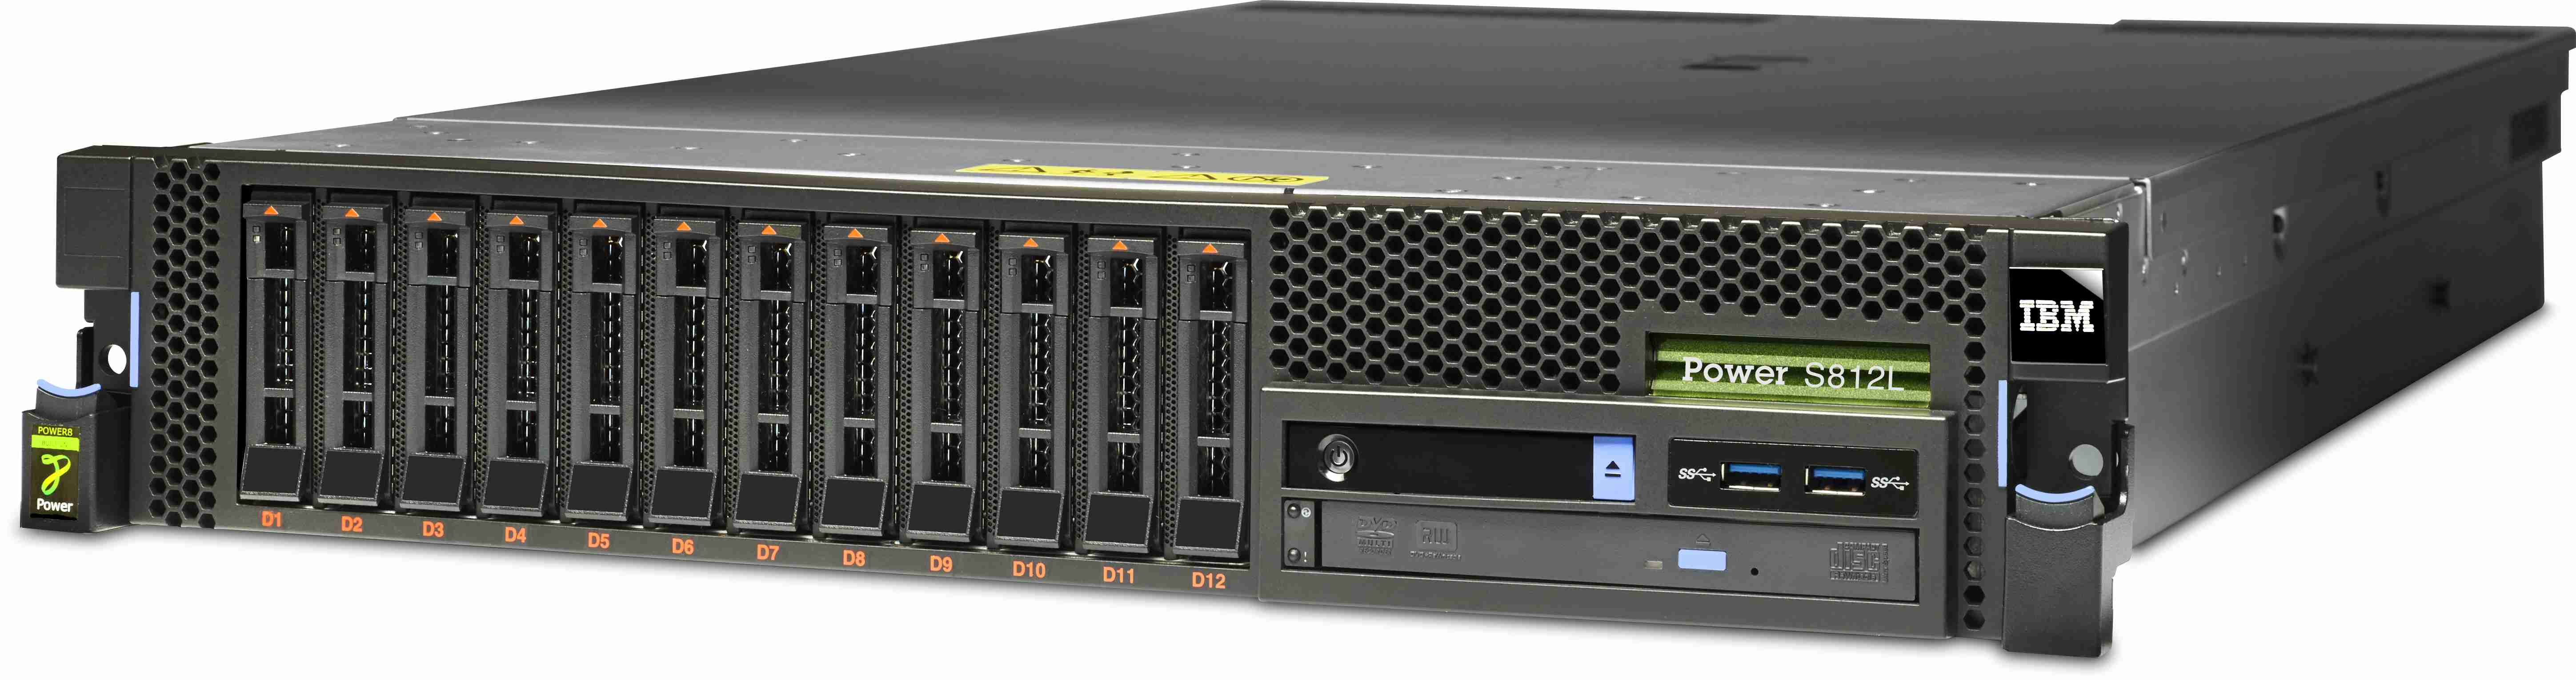 IBM Power Systems S812L